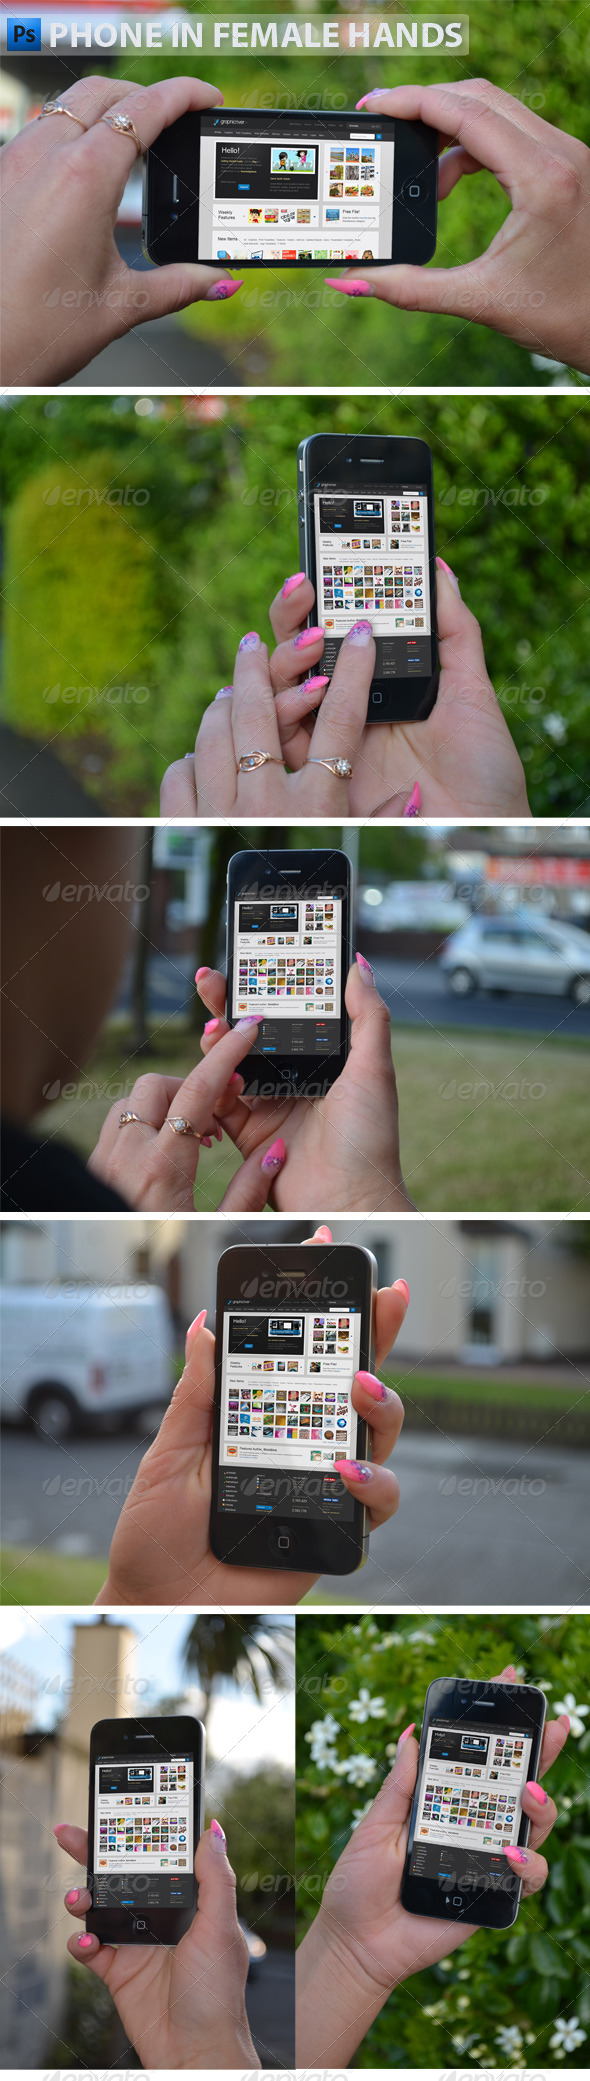 GraphicRiver Phone in Female Hands 4906526